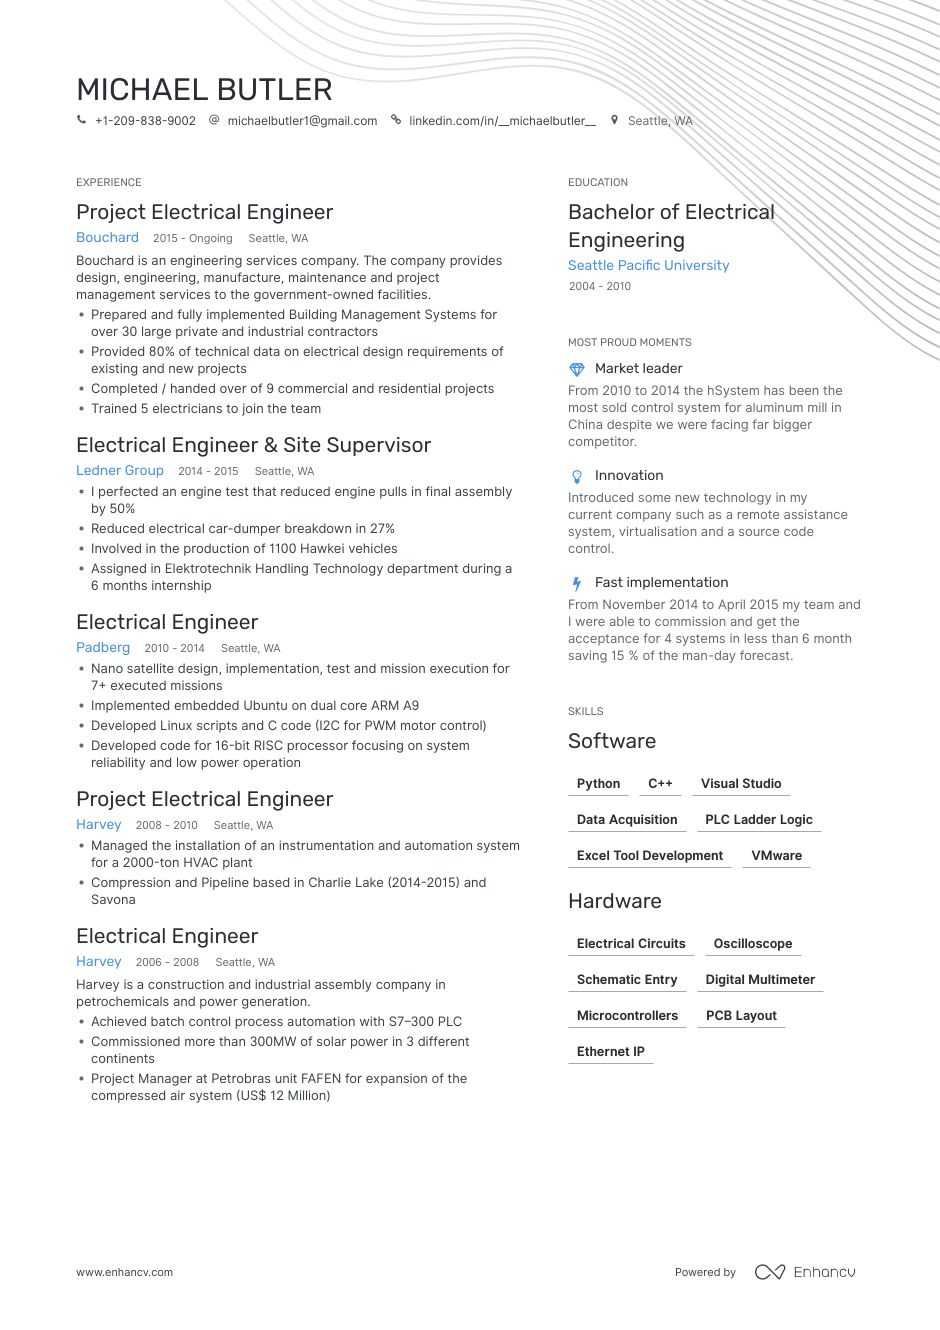 electrical engineer resume examples pro tips featured enhancv automation engineering Resume Automation Engineer Resume